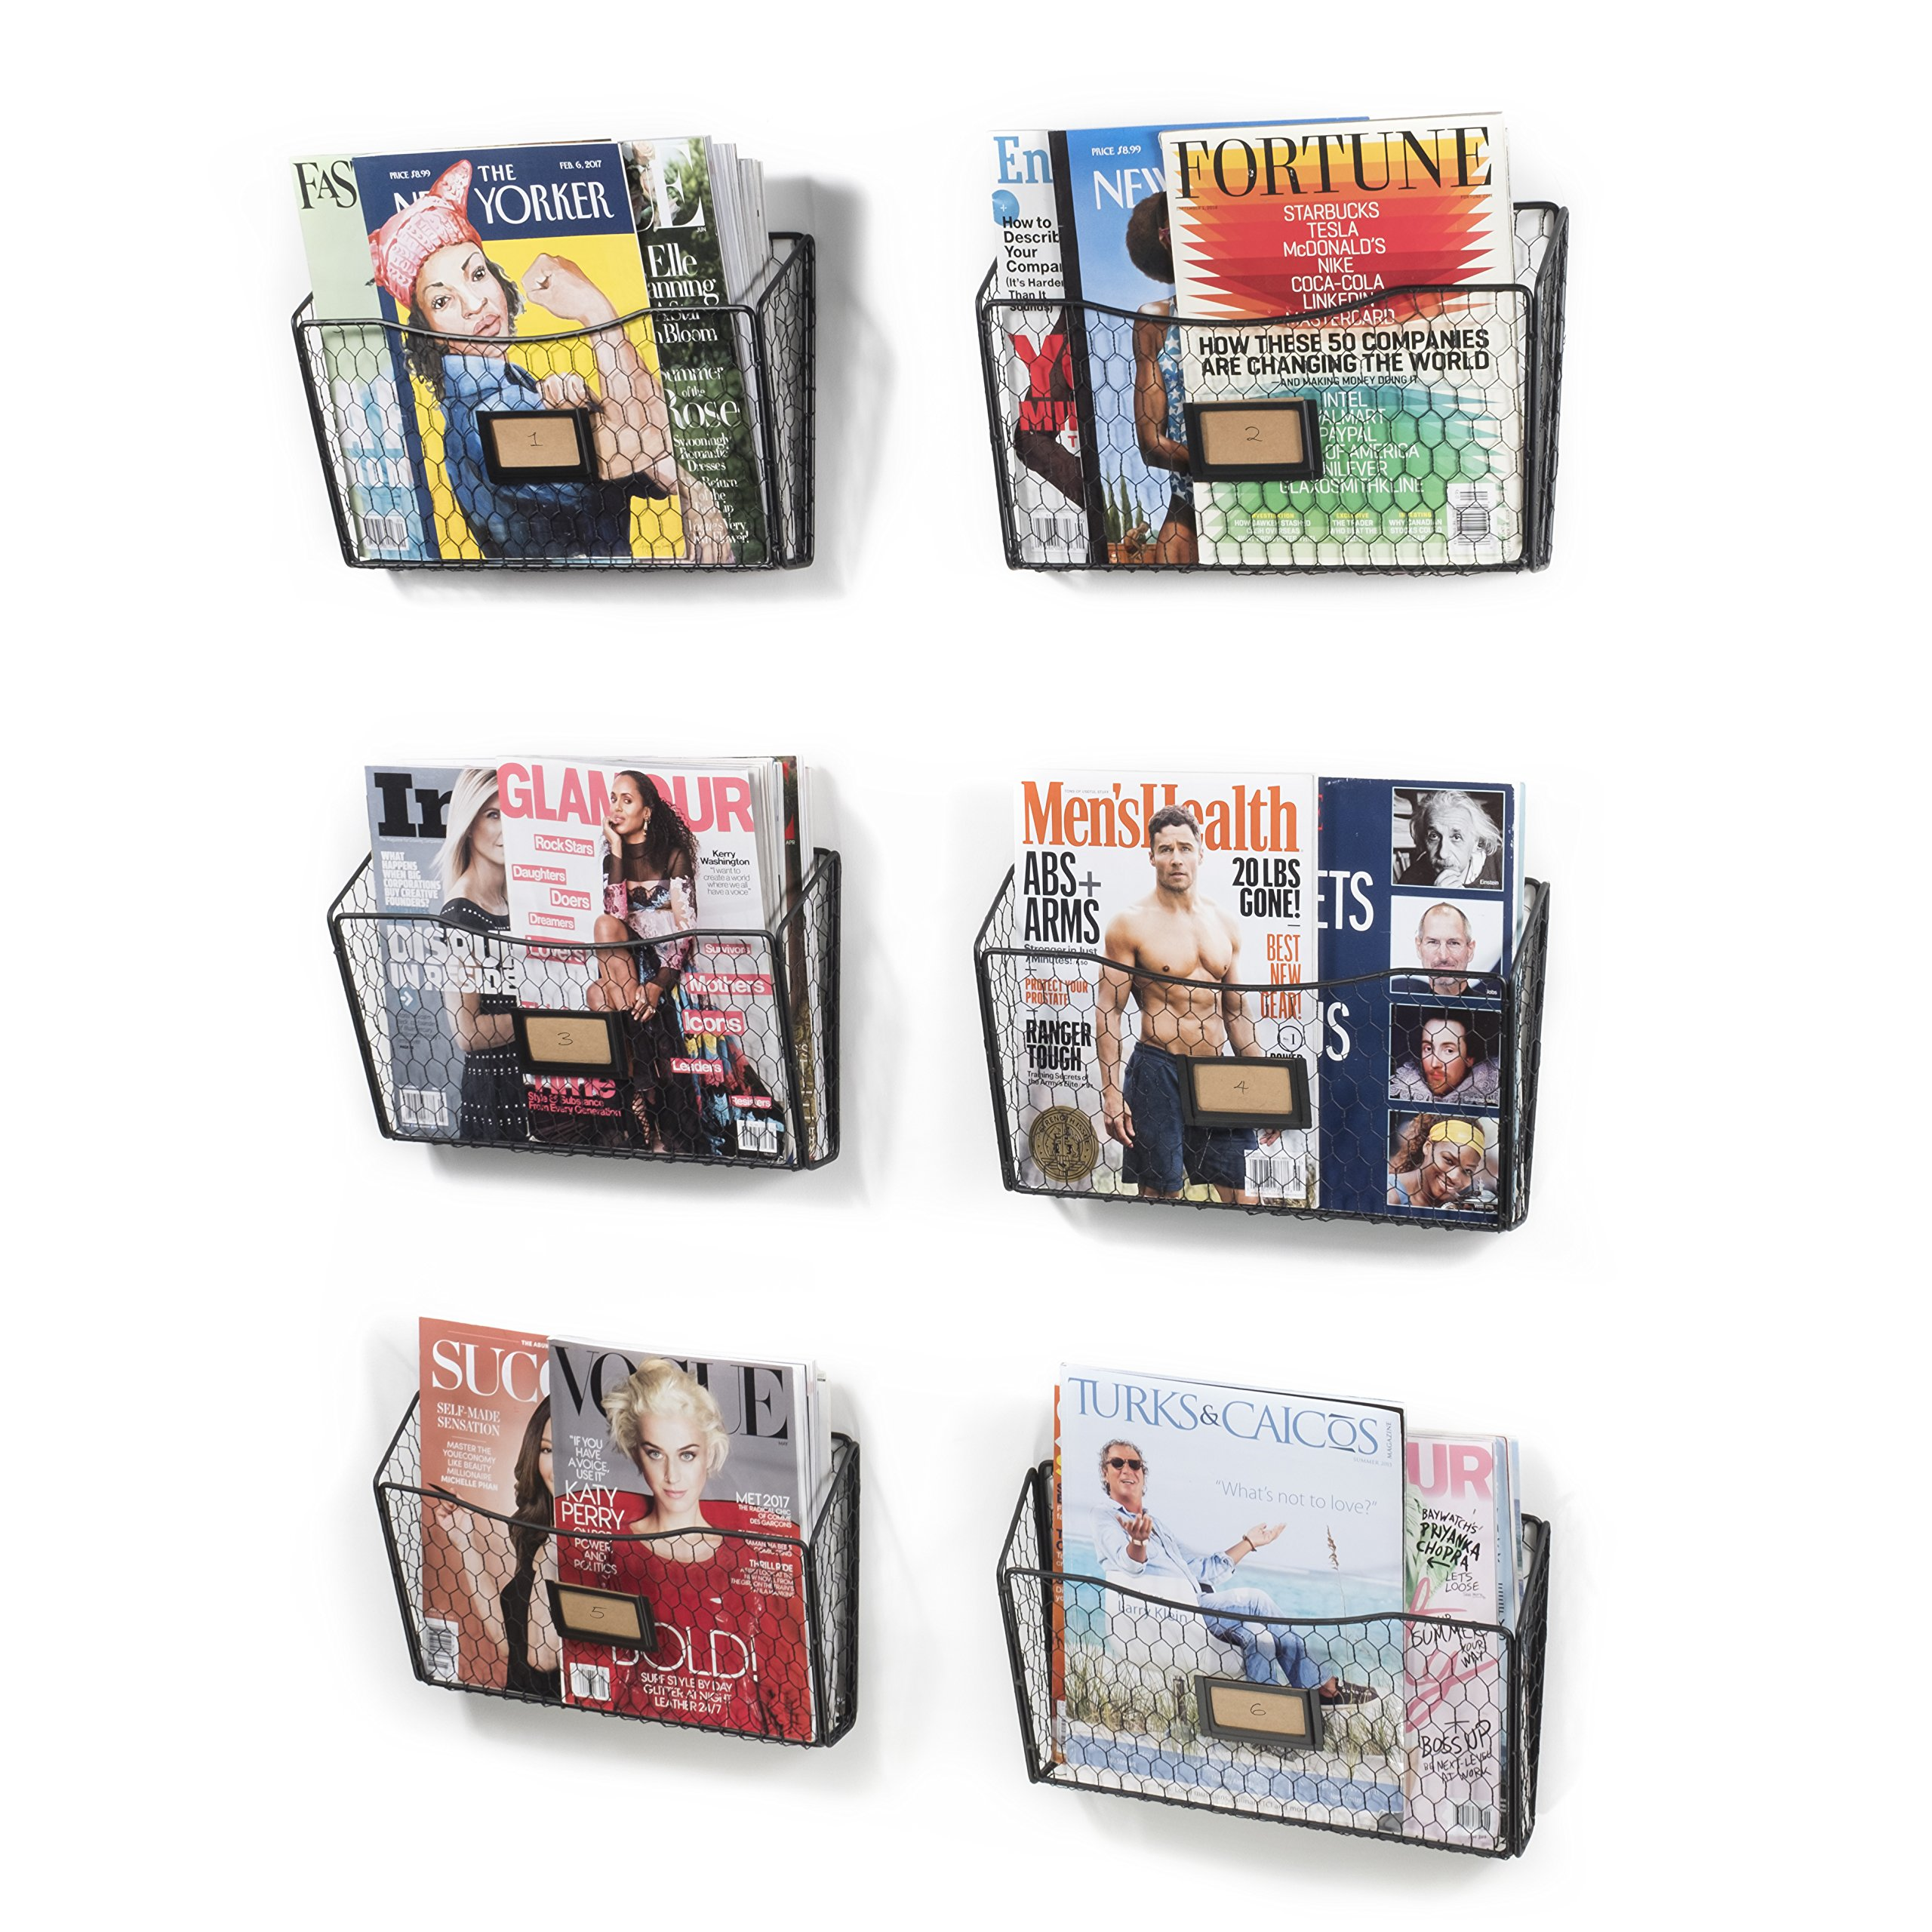 Wall35 Felic Hanging File Holder - Wall Mounted Metal Chicken Wire Magazine Rack - Office Folder Organizer with Name Tag Slot in Black (6) by Wall35 (Image #4)